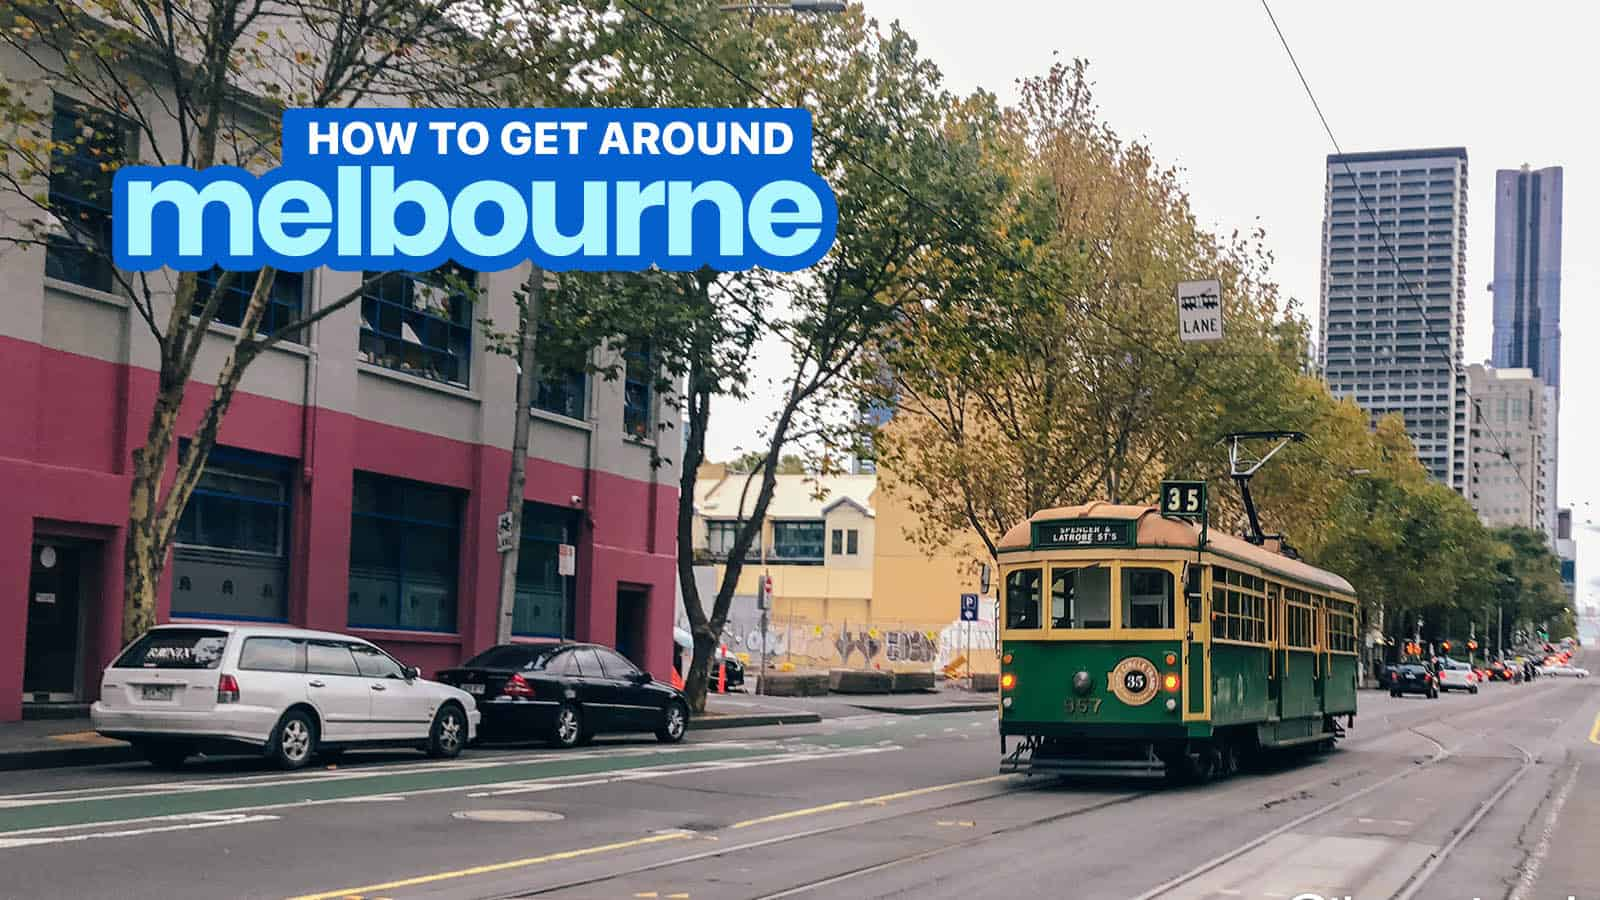 GETTING AROUND MELBOURNE: How to Use Myki Card + Tram, Train, Bus